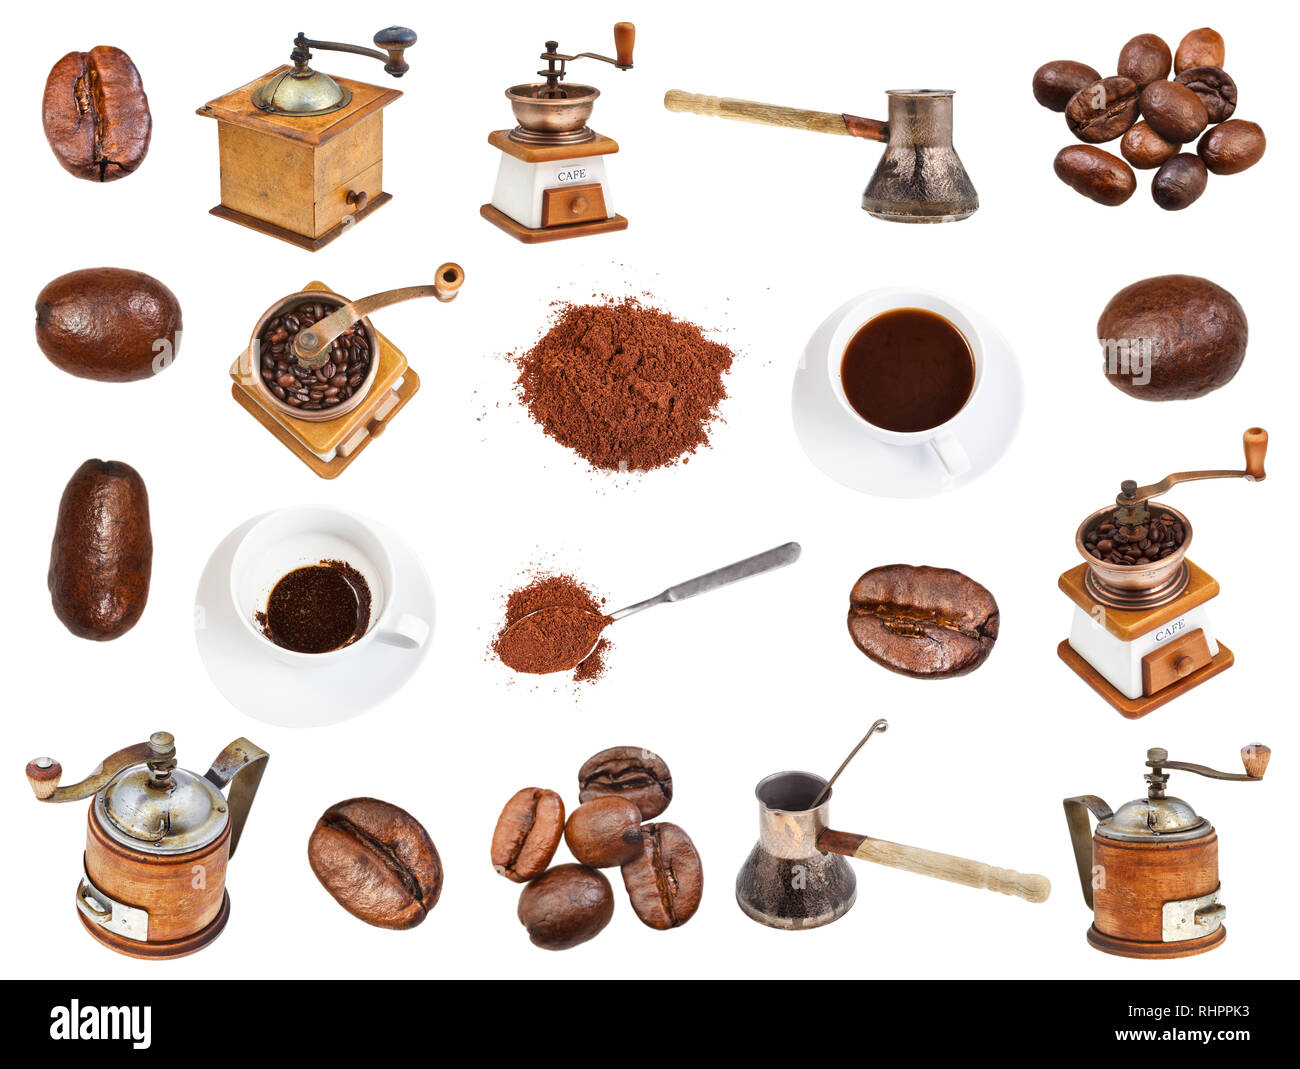 collage from coffee, beans, ground powder, coffee mills, drinks in cups isolated on white background - Stock Image